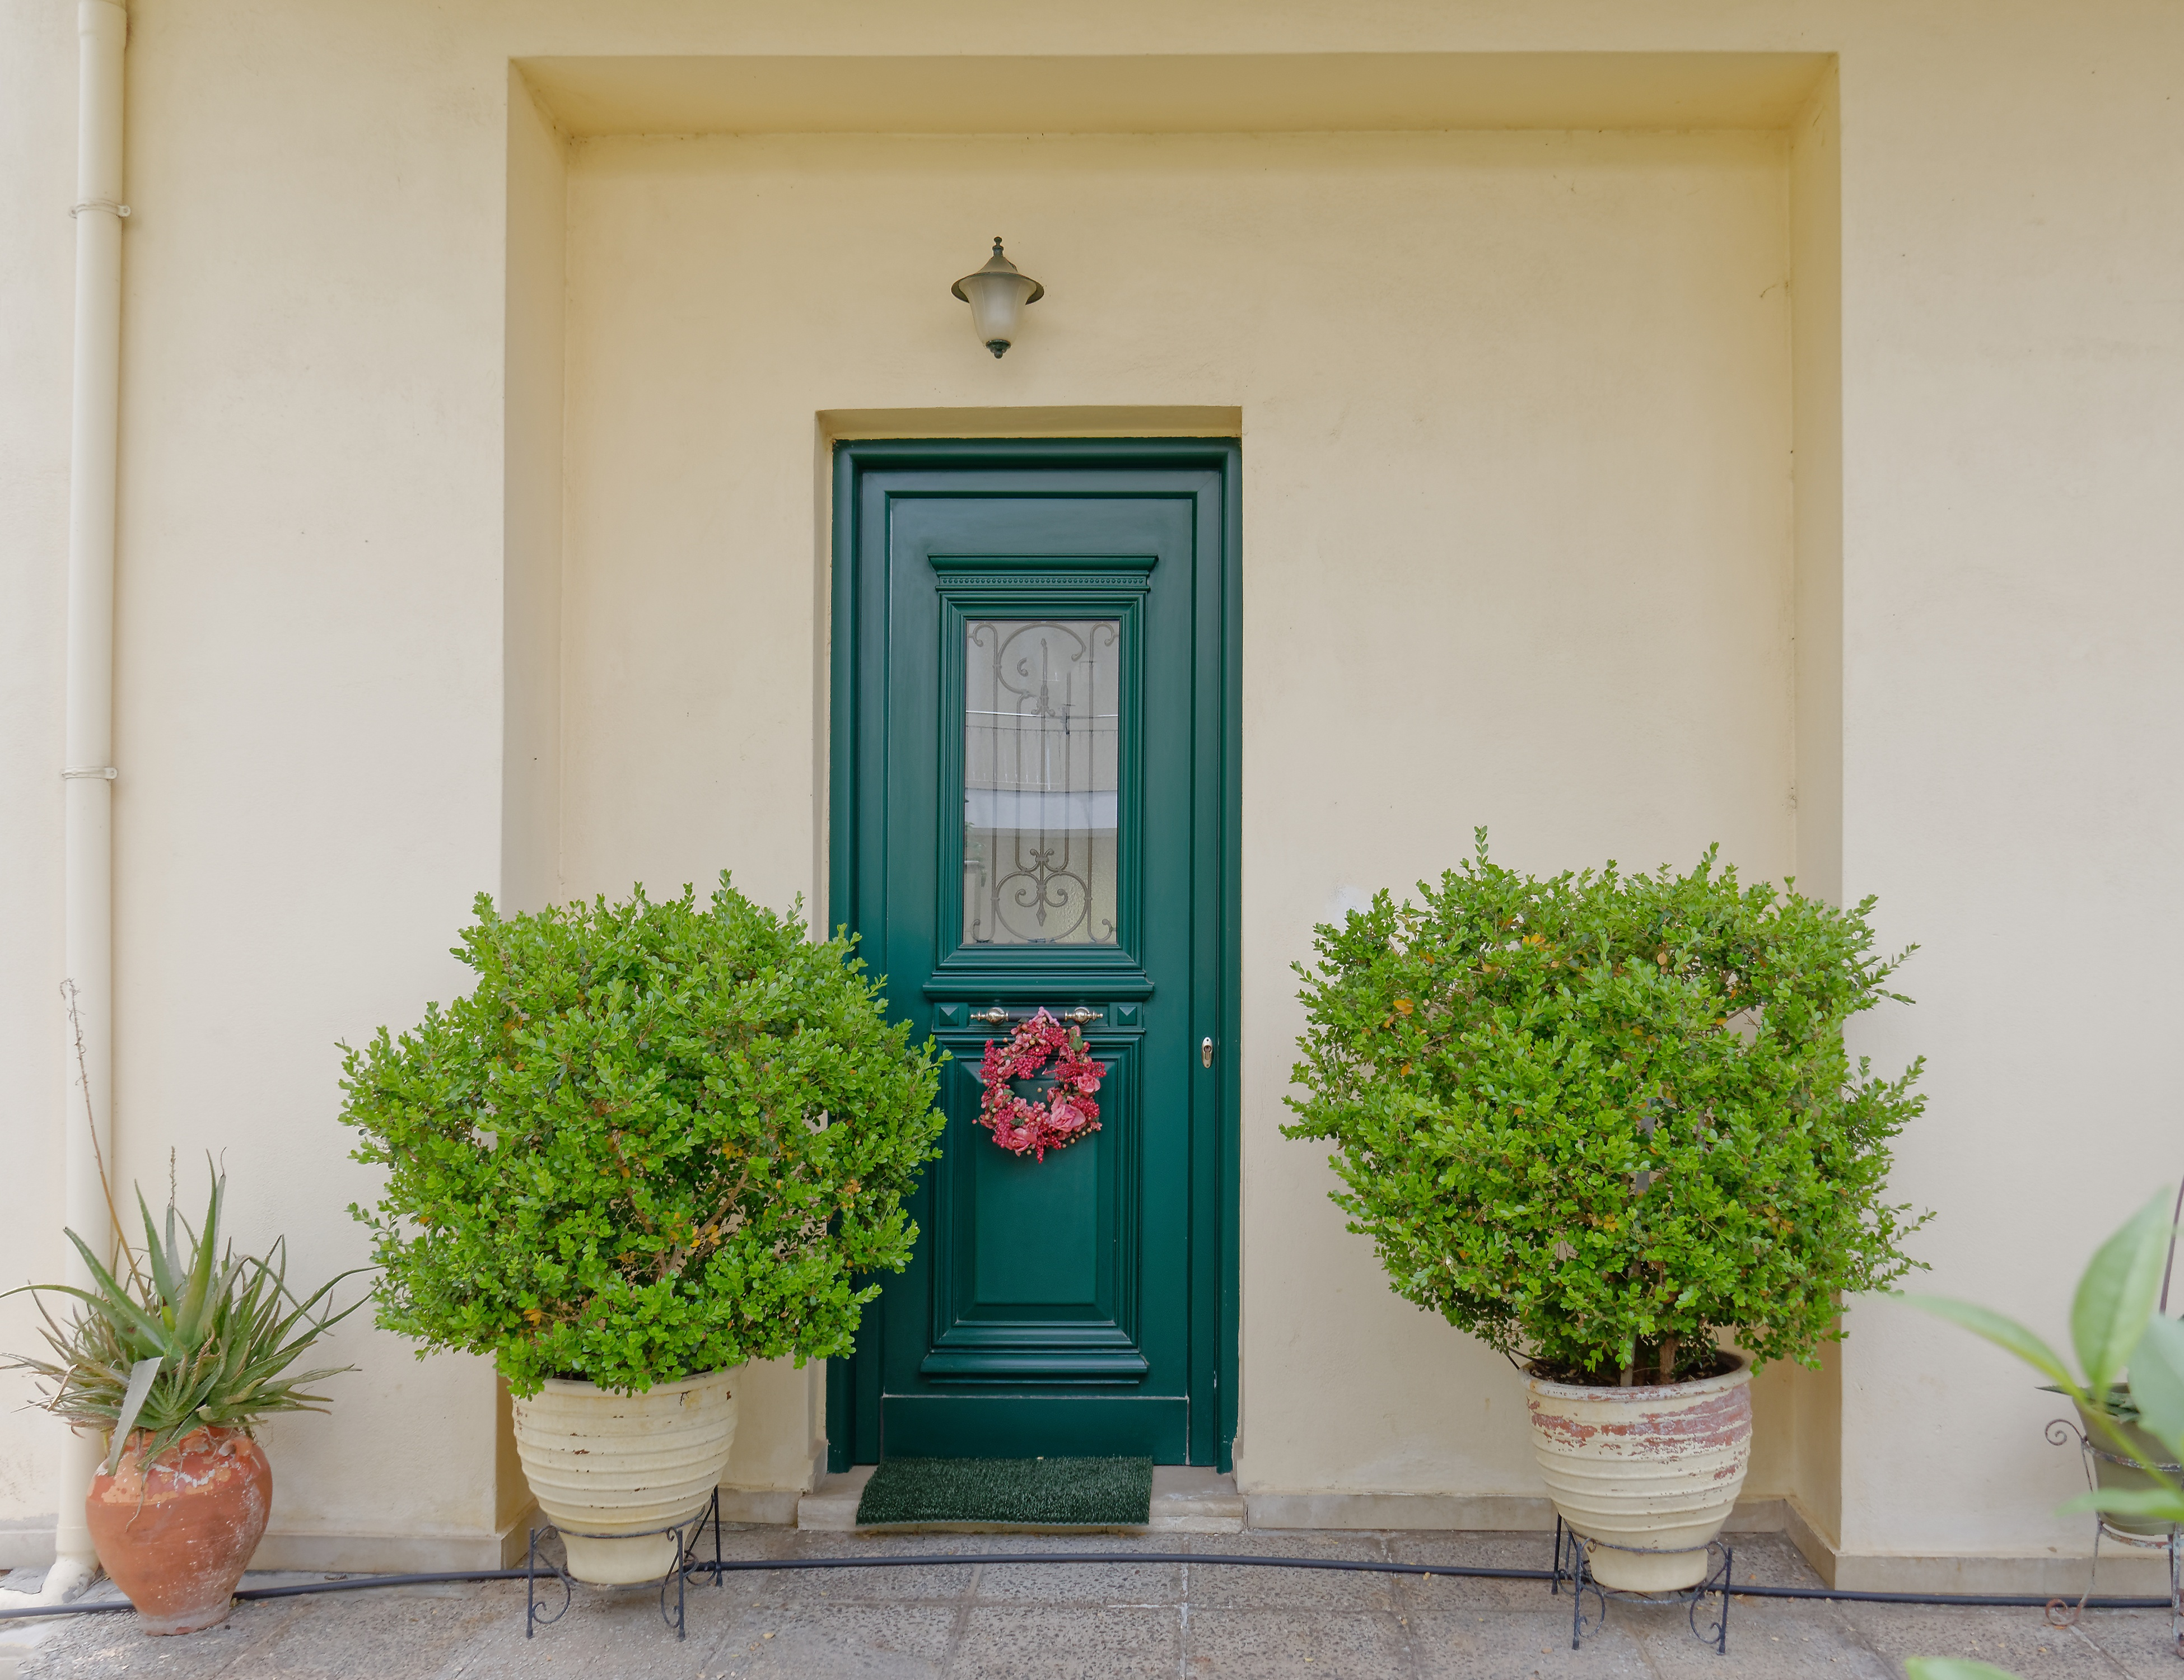 Make over your front door with a shade of green for instant curb appeal.